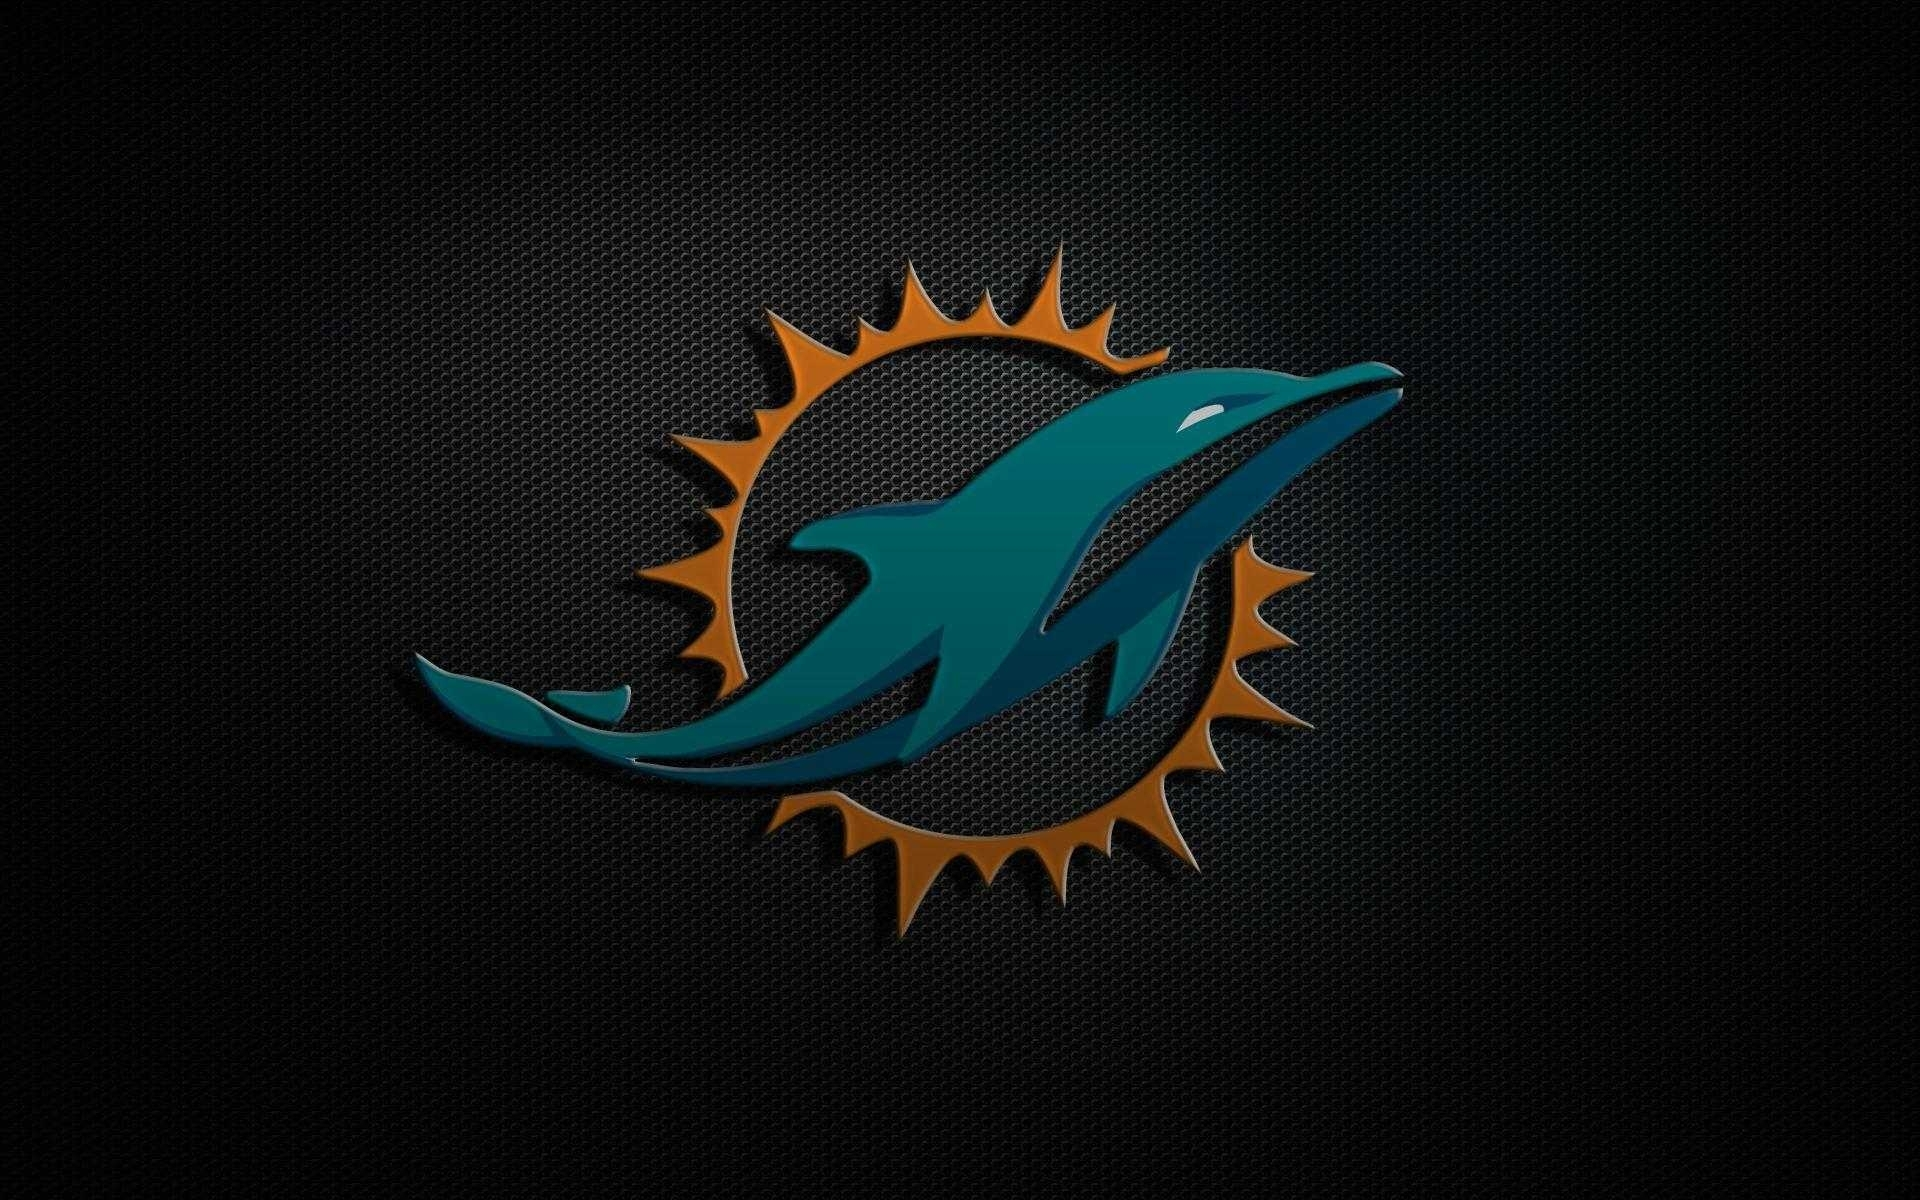 miami dolphin wallpaper desktop dolphins of pc computer screen